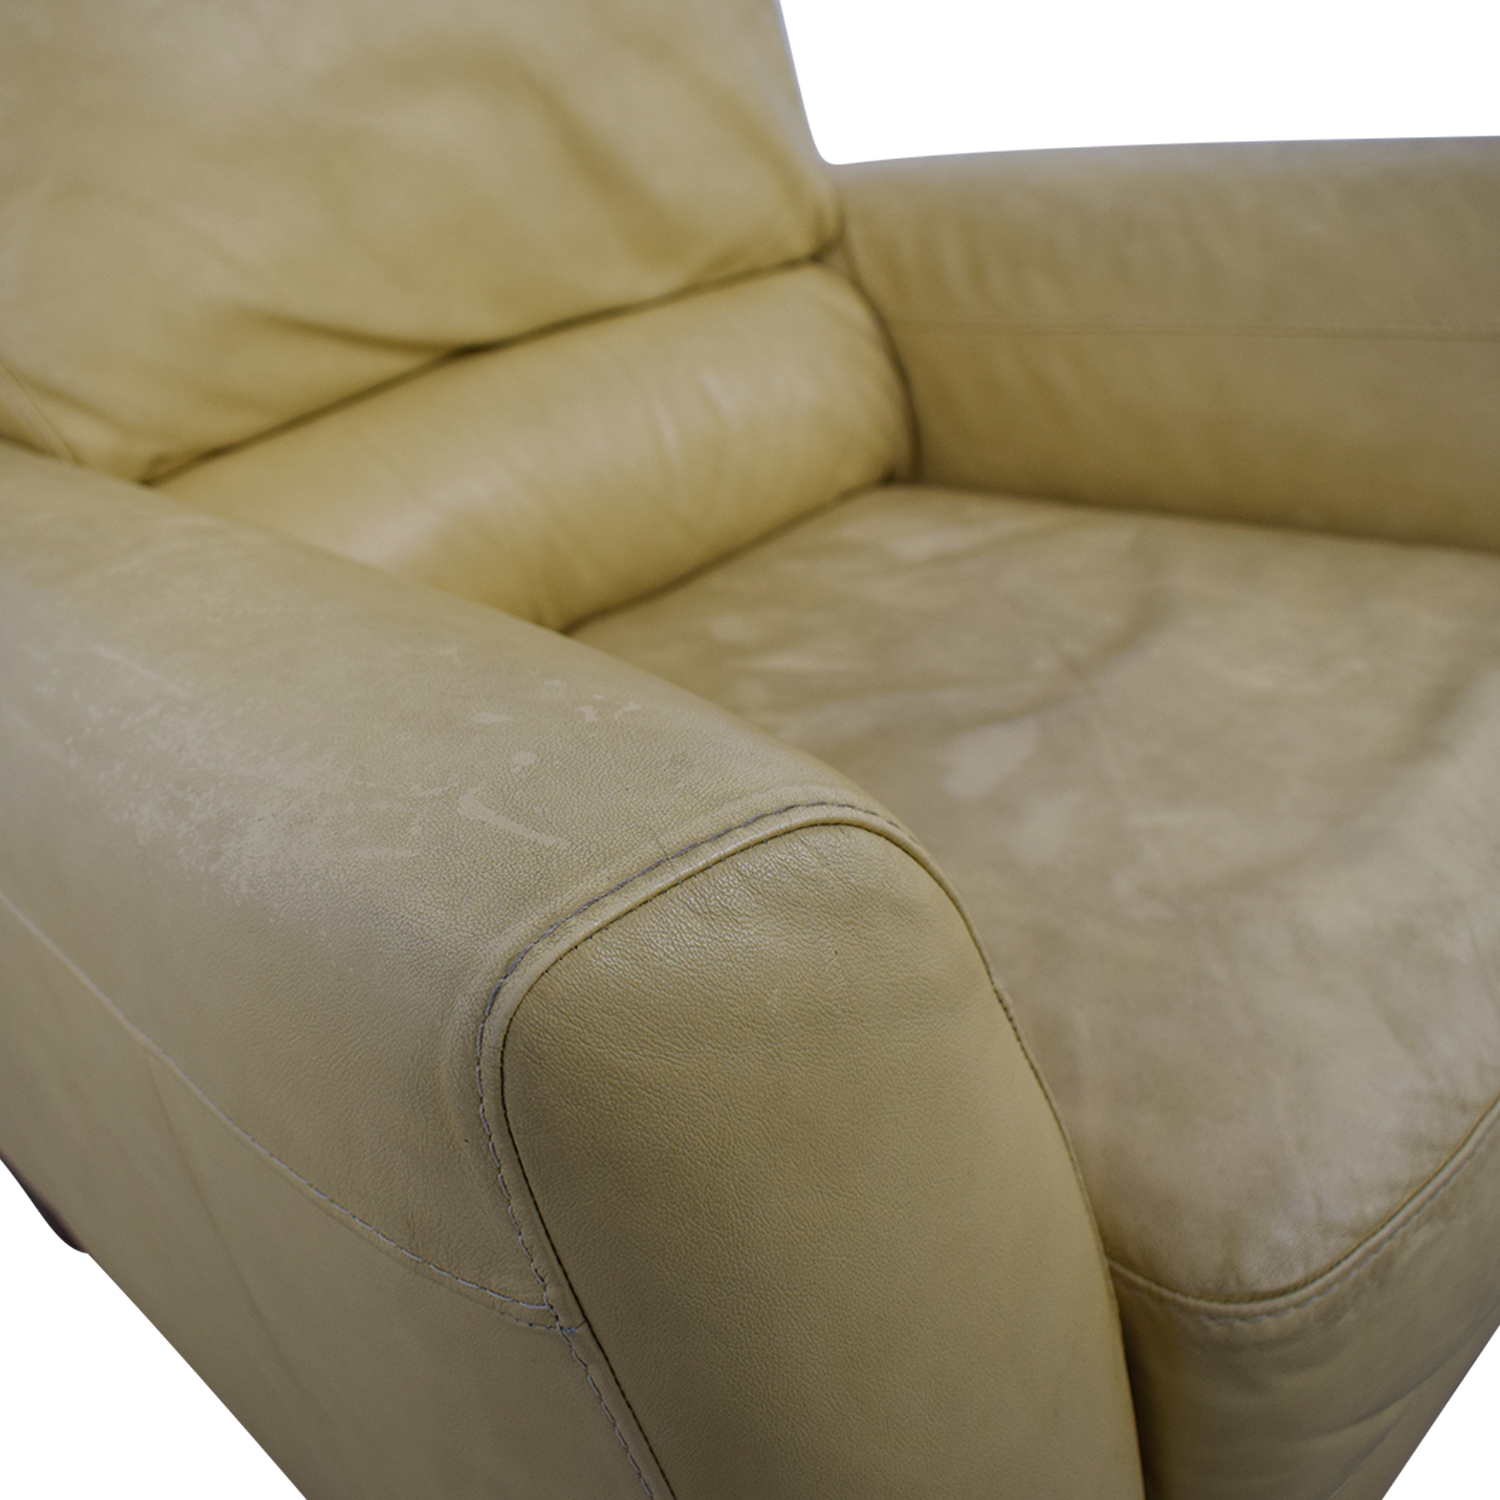 Macy's Macy's Mustard Yellow Recliner for sale